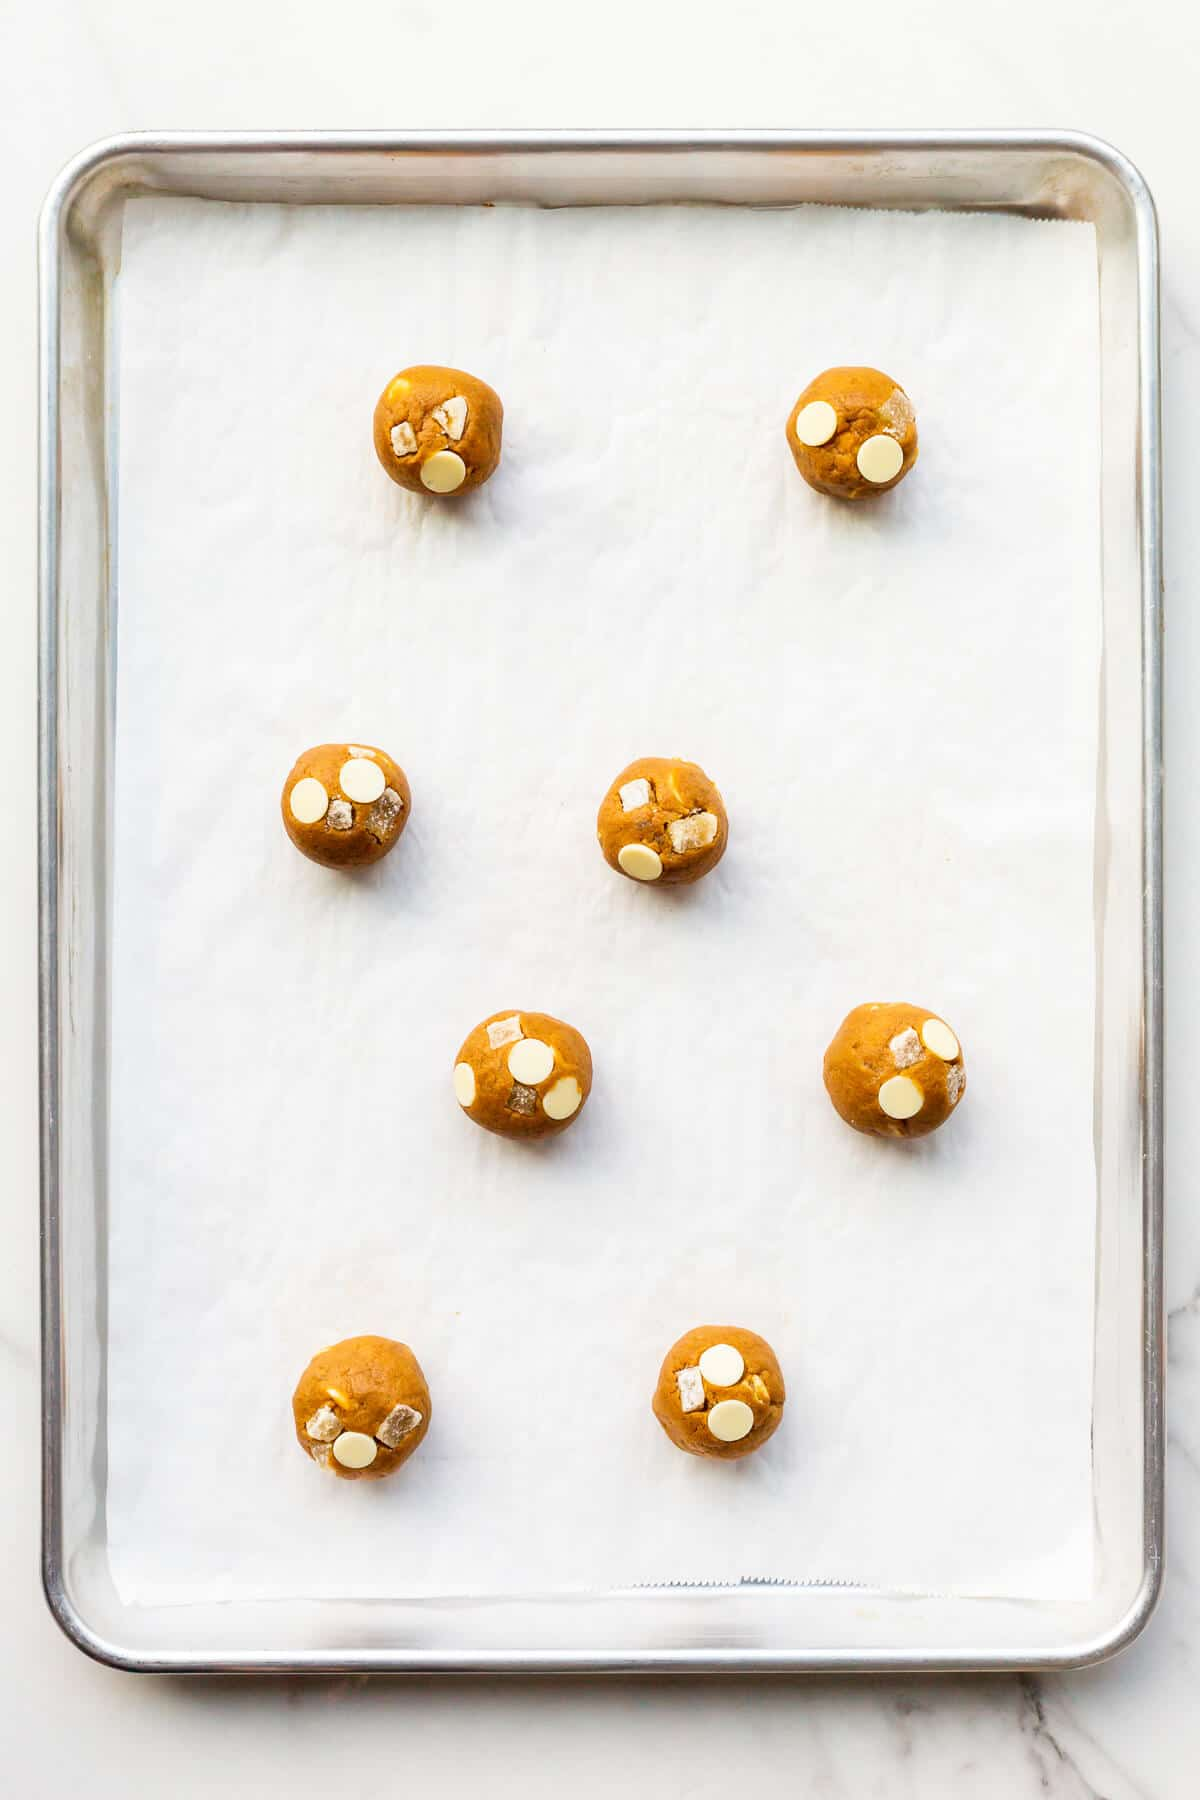 Scoops of ginger cookie dough with white chocolate chips before baking on a parchment-lined sheet pan.